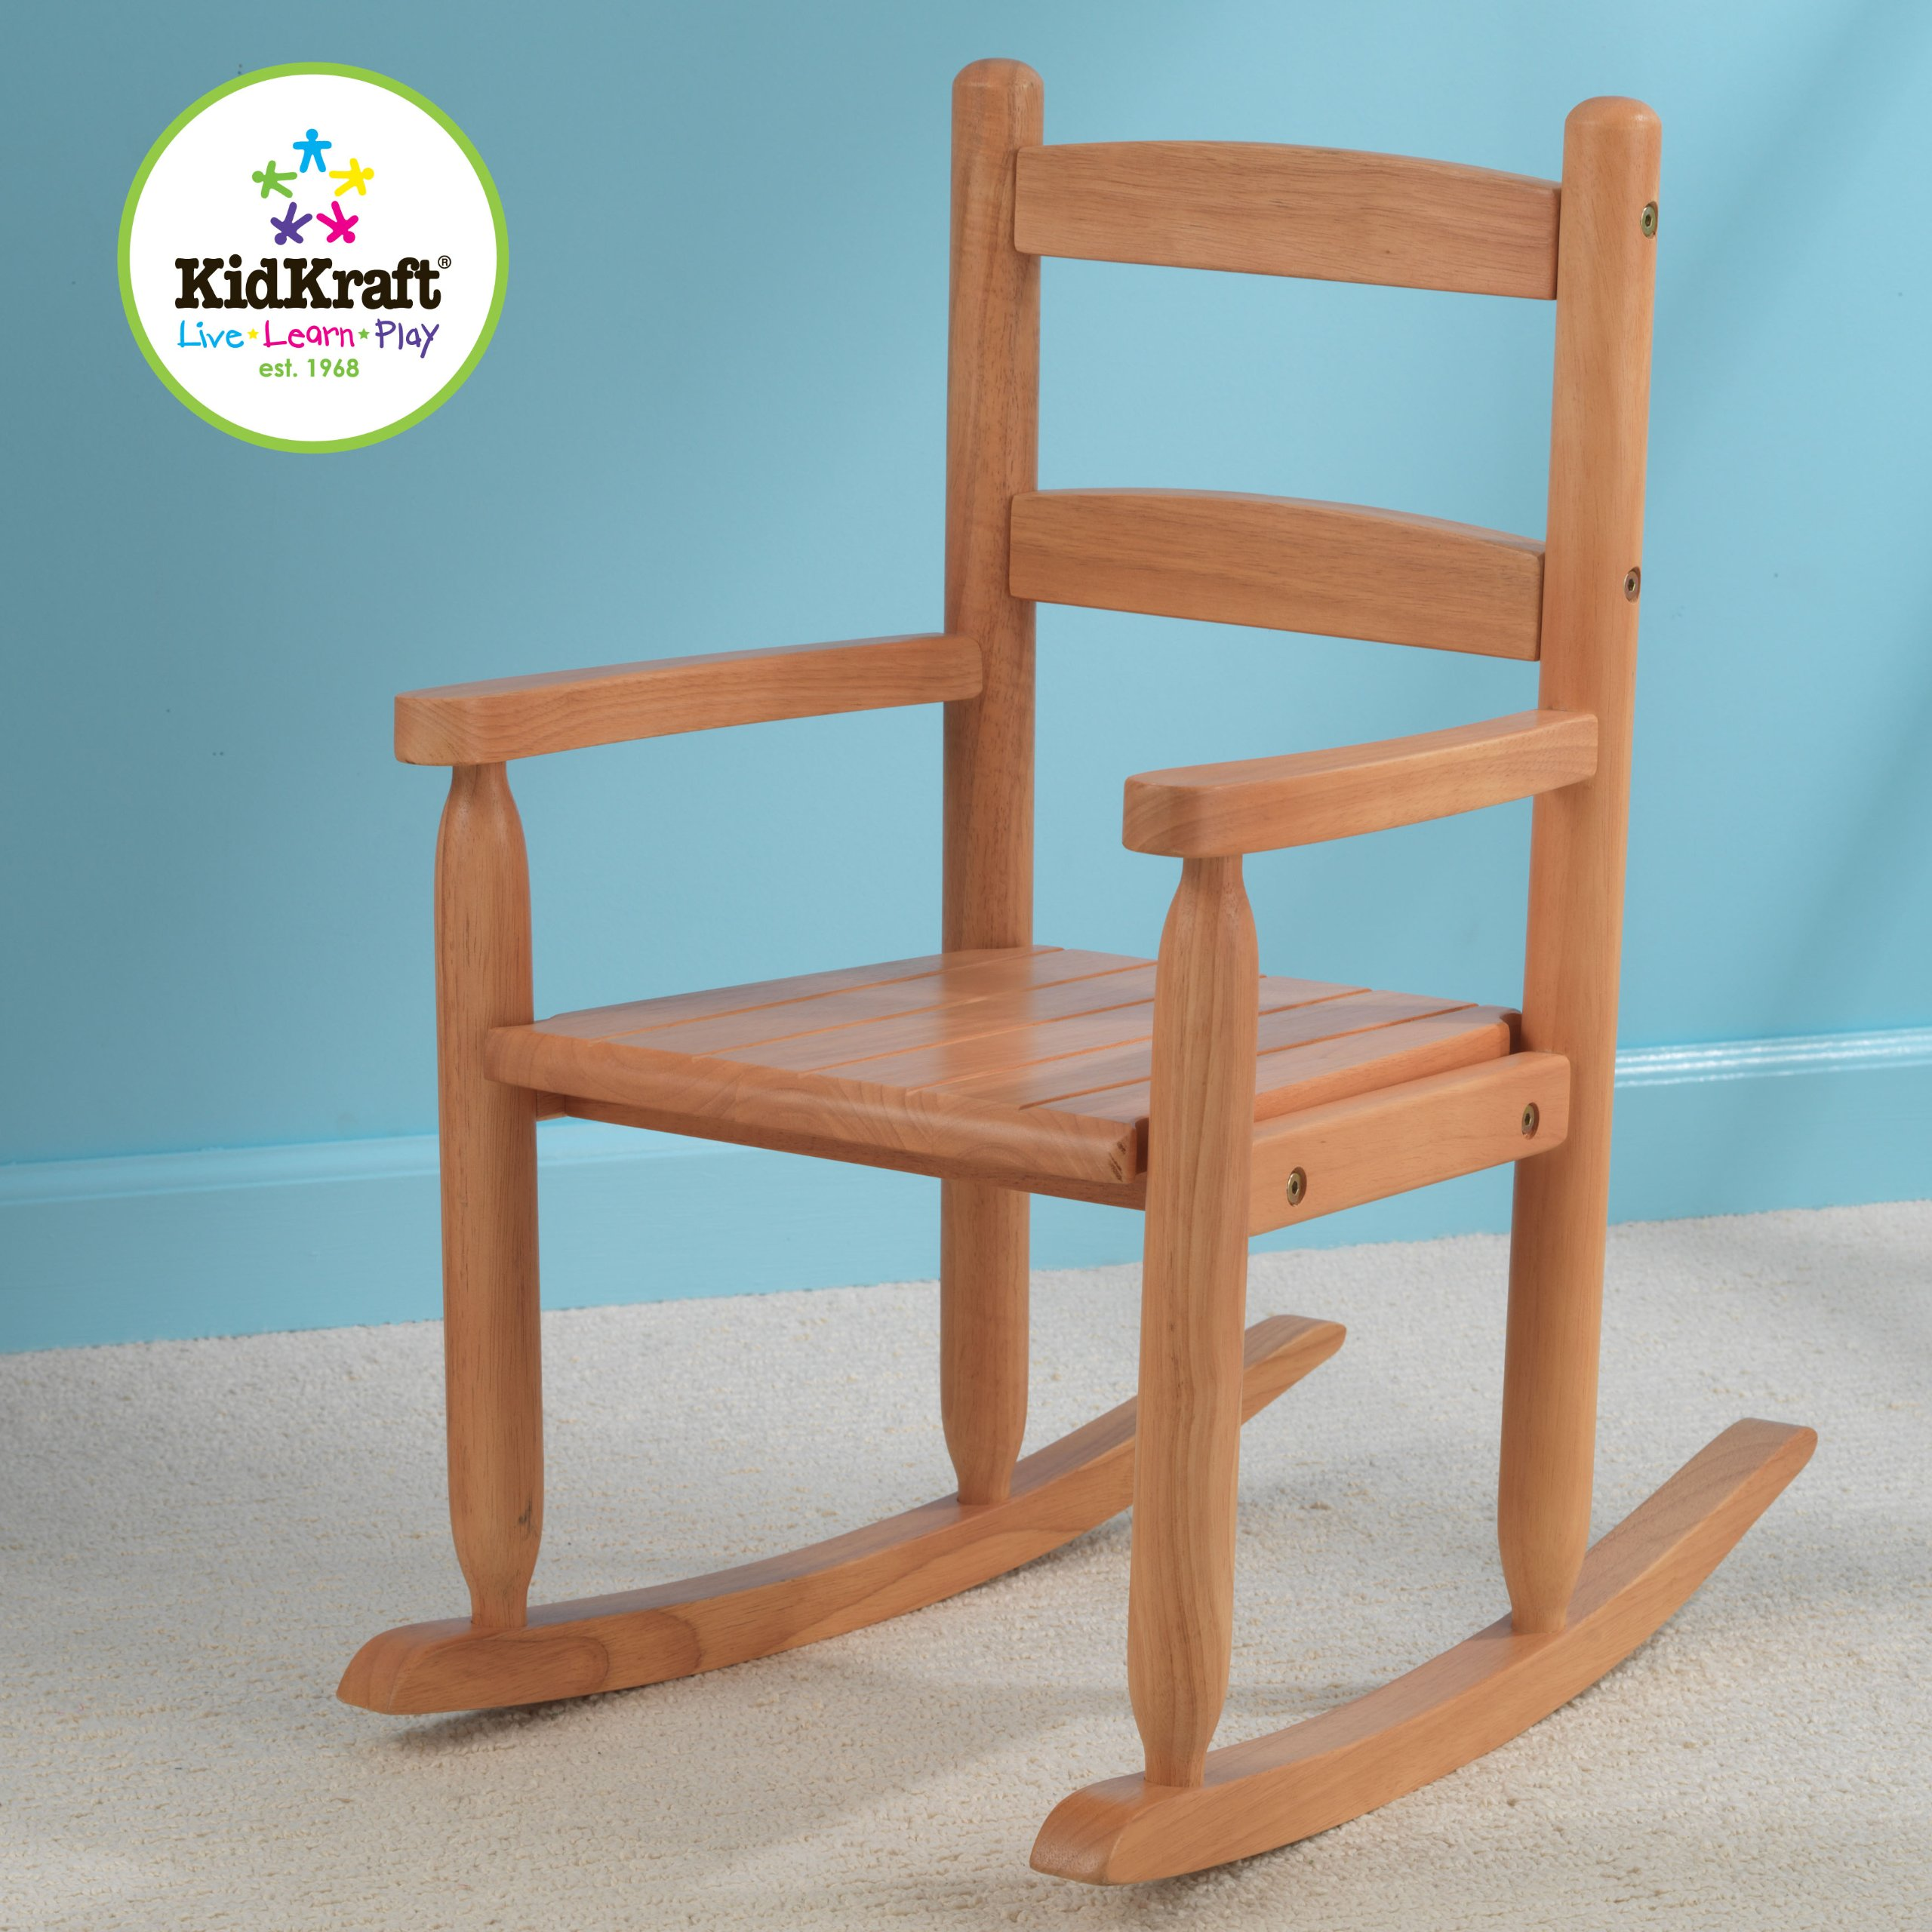 KidKraft 2-Slat Rocking Chair - Honey